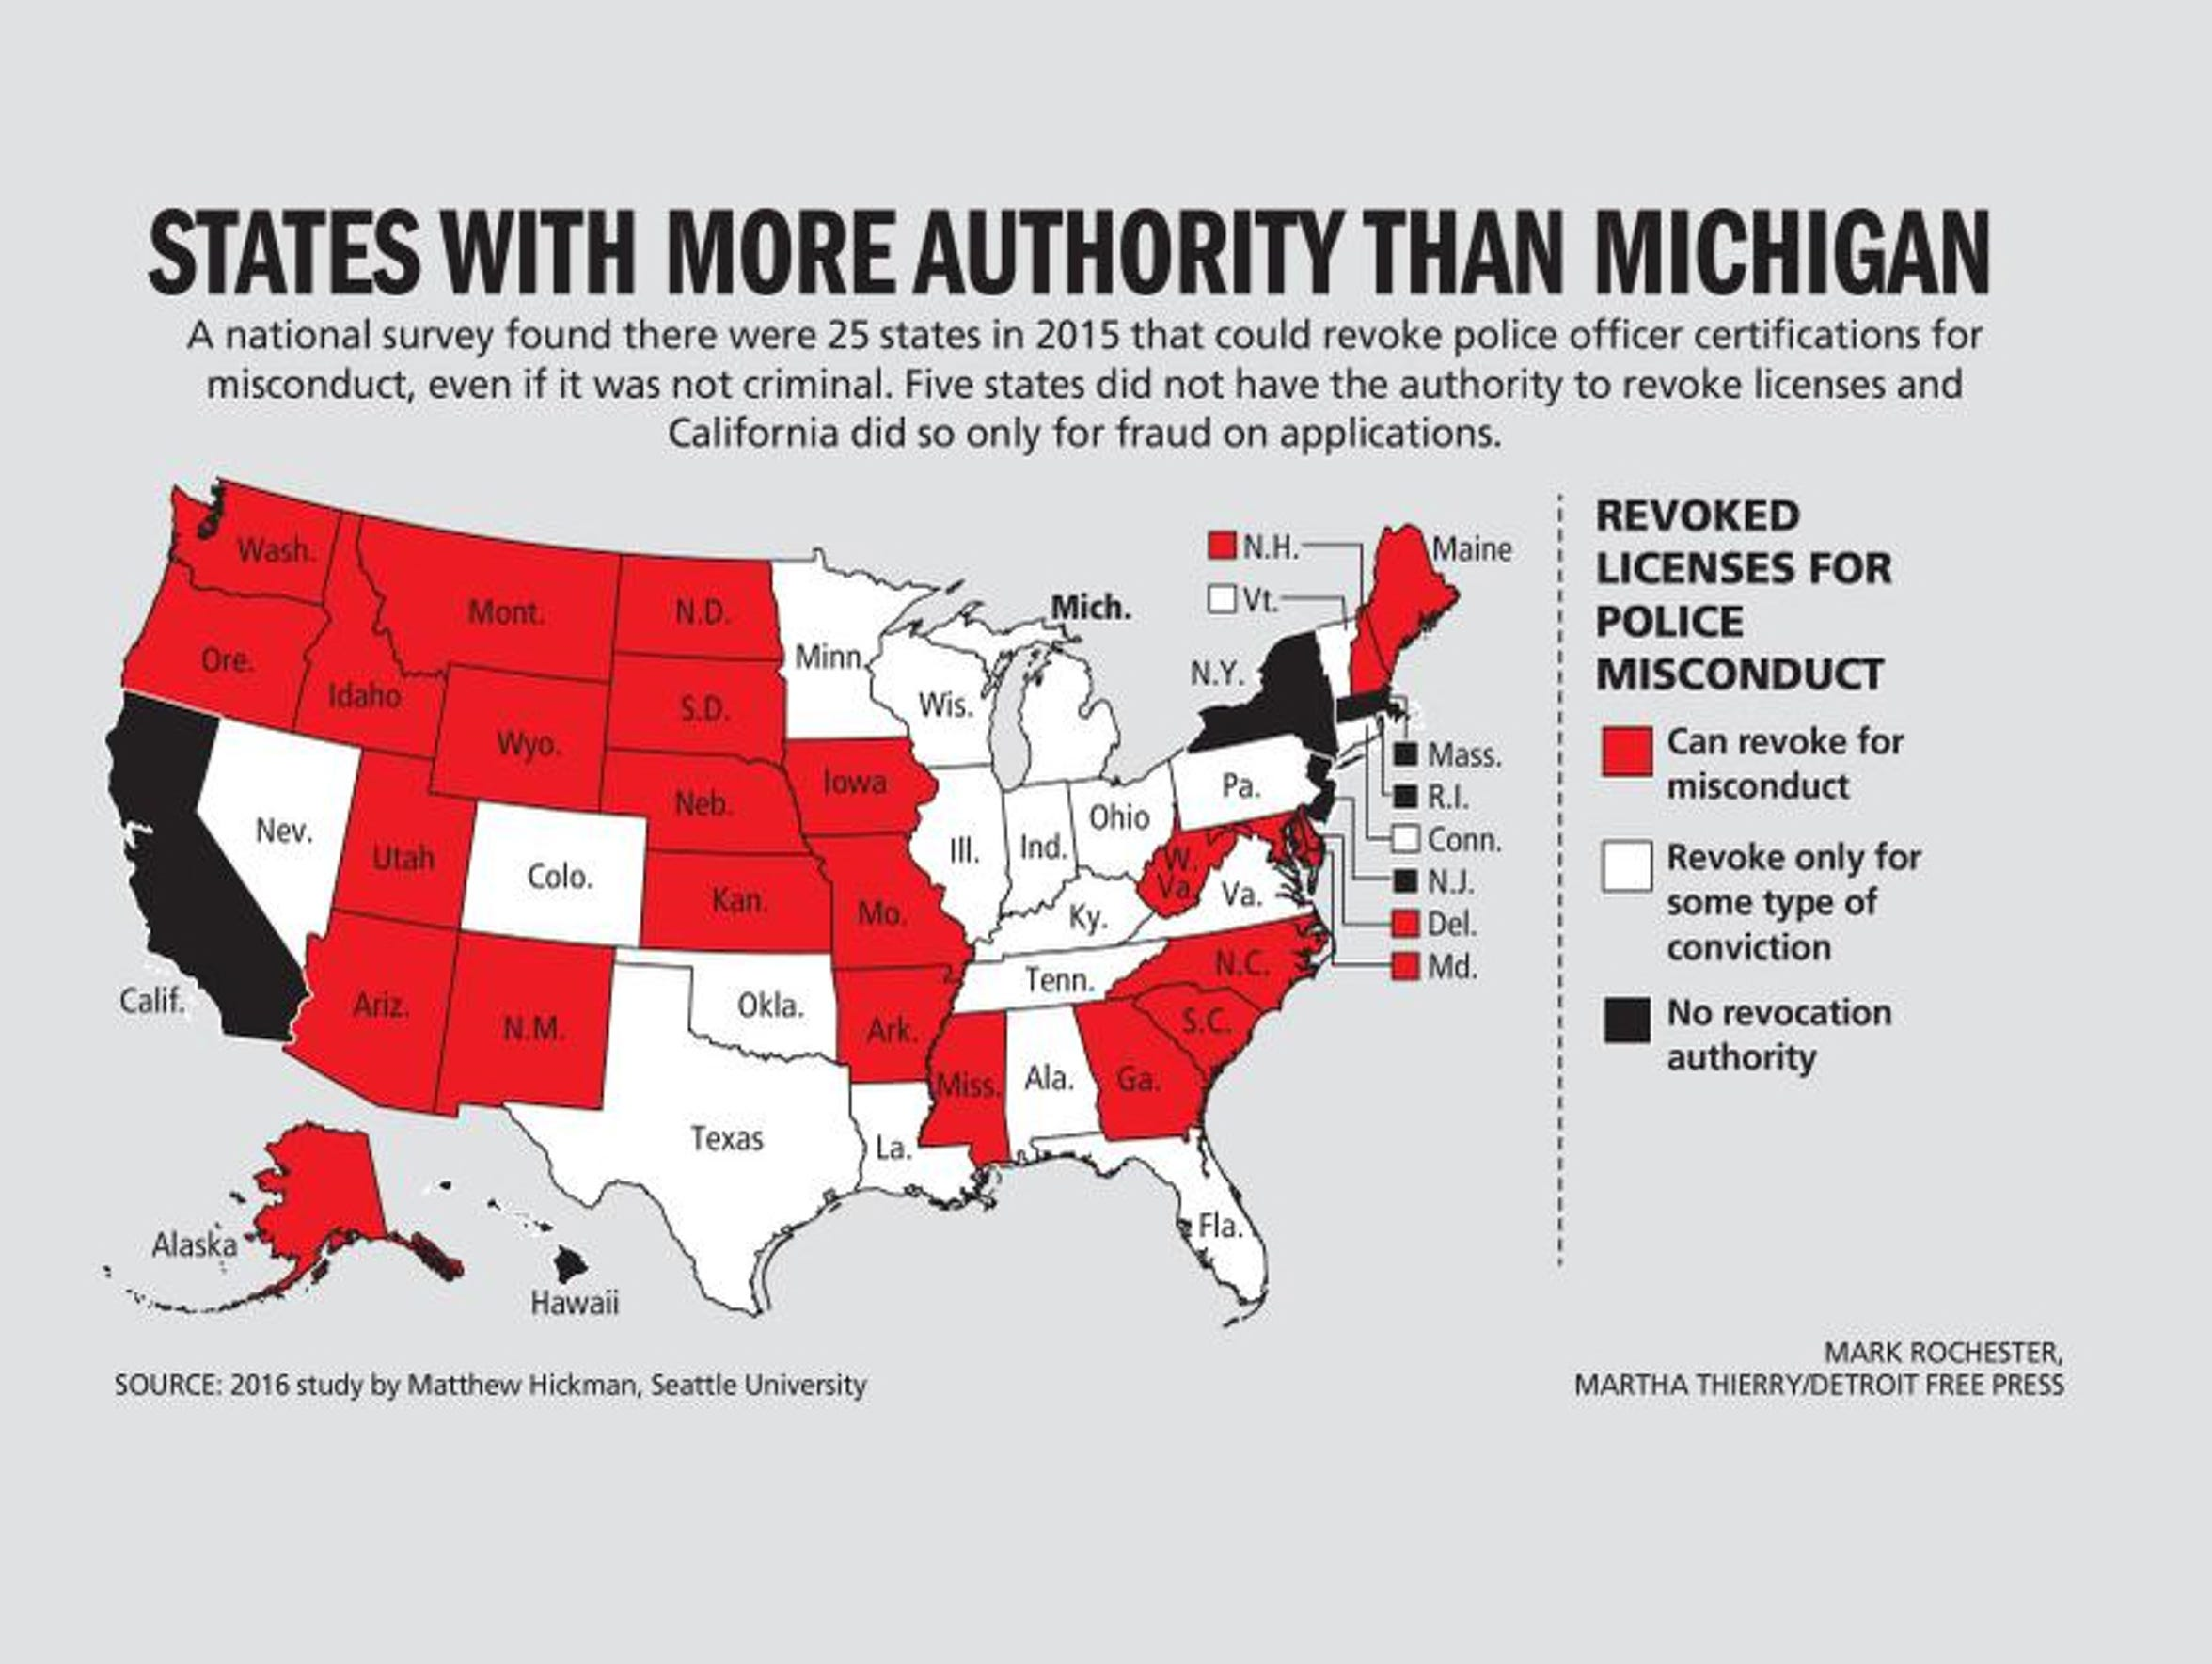 States with more authority than Michigan.